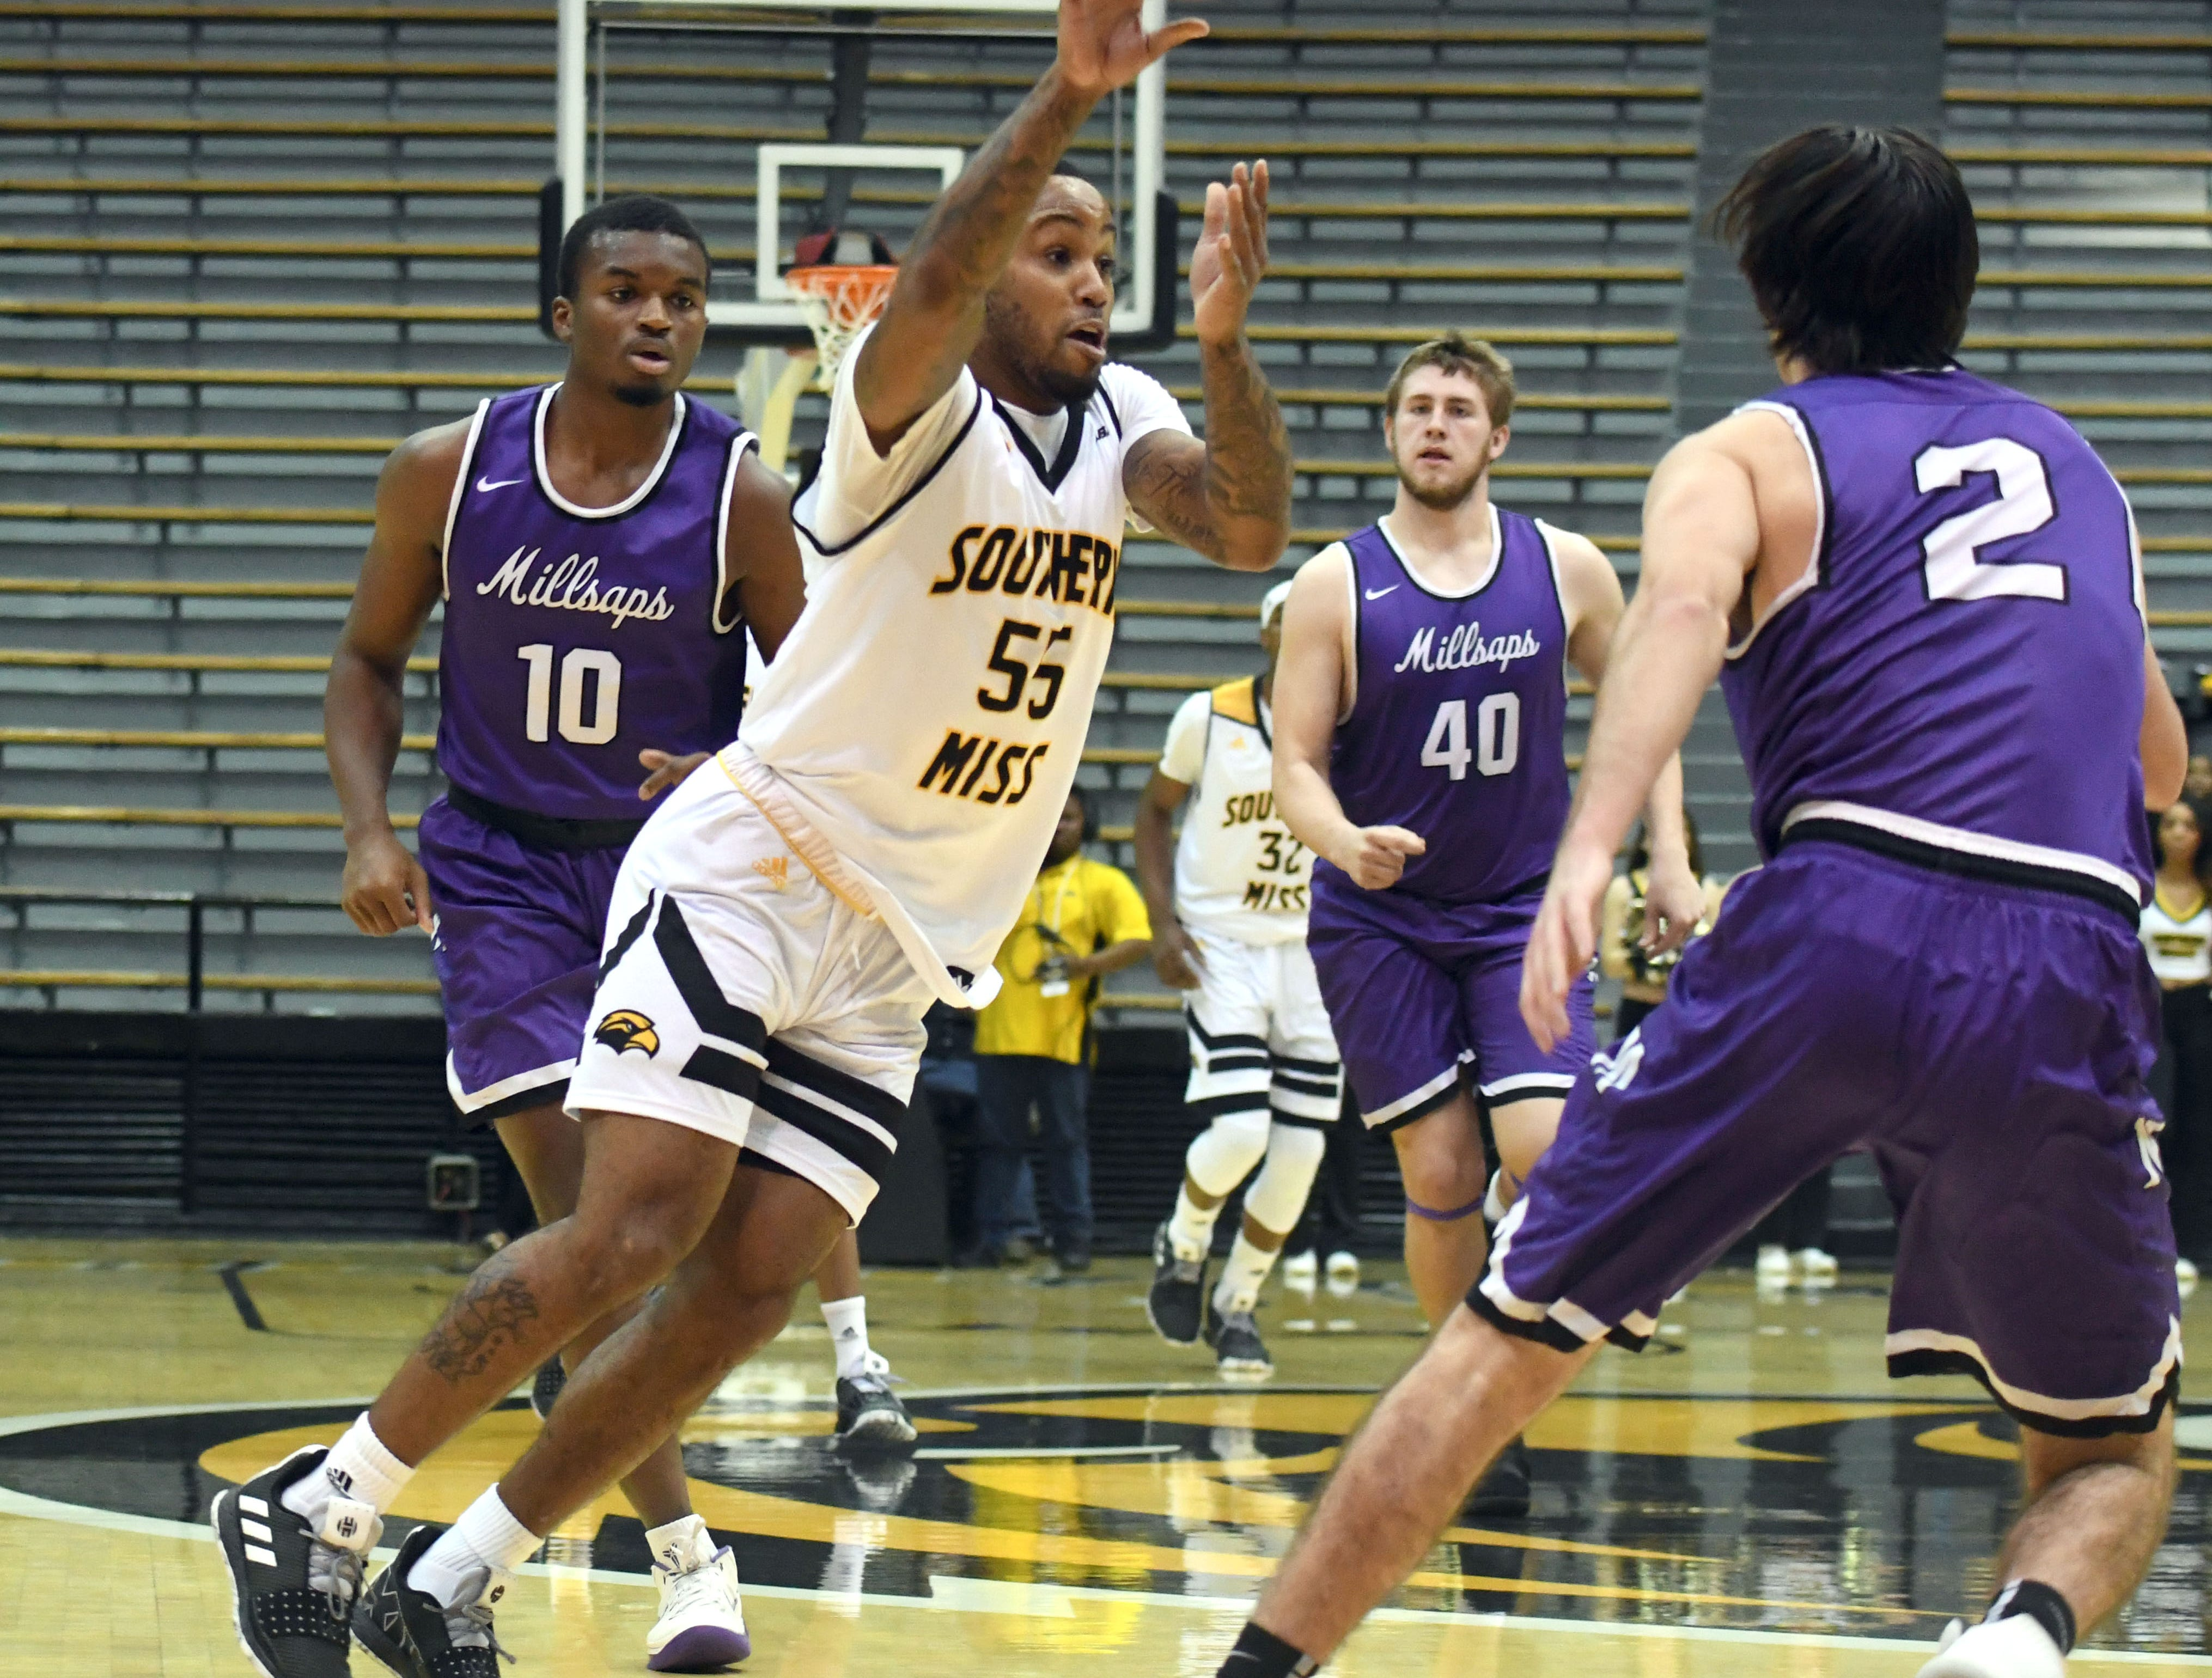 Southern Miss guard Tyree Griffin drives down the court in a game against Millsaps in Reed Green Coliseum on Tuesday, December 11, 2018.